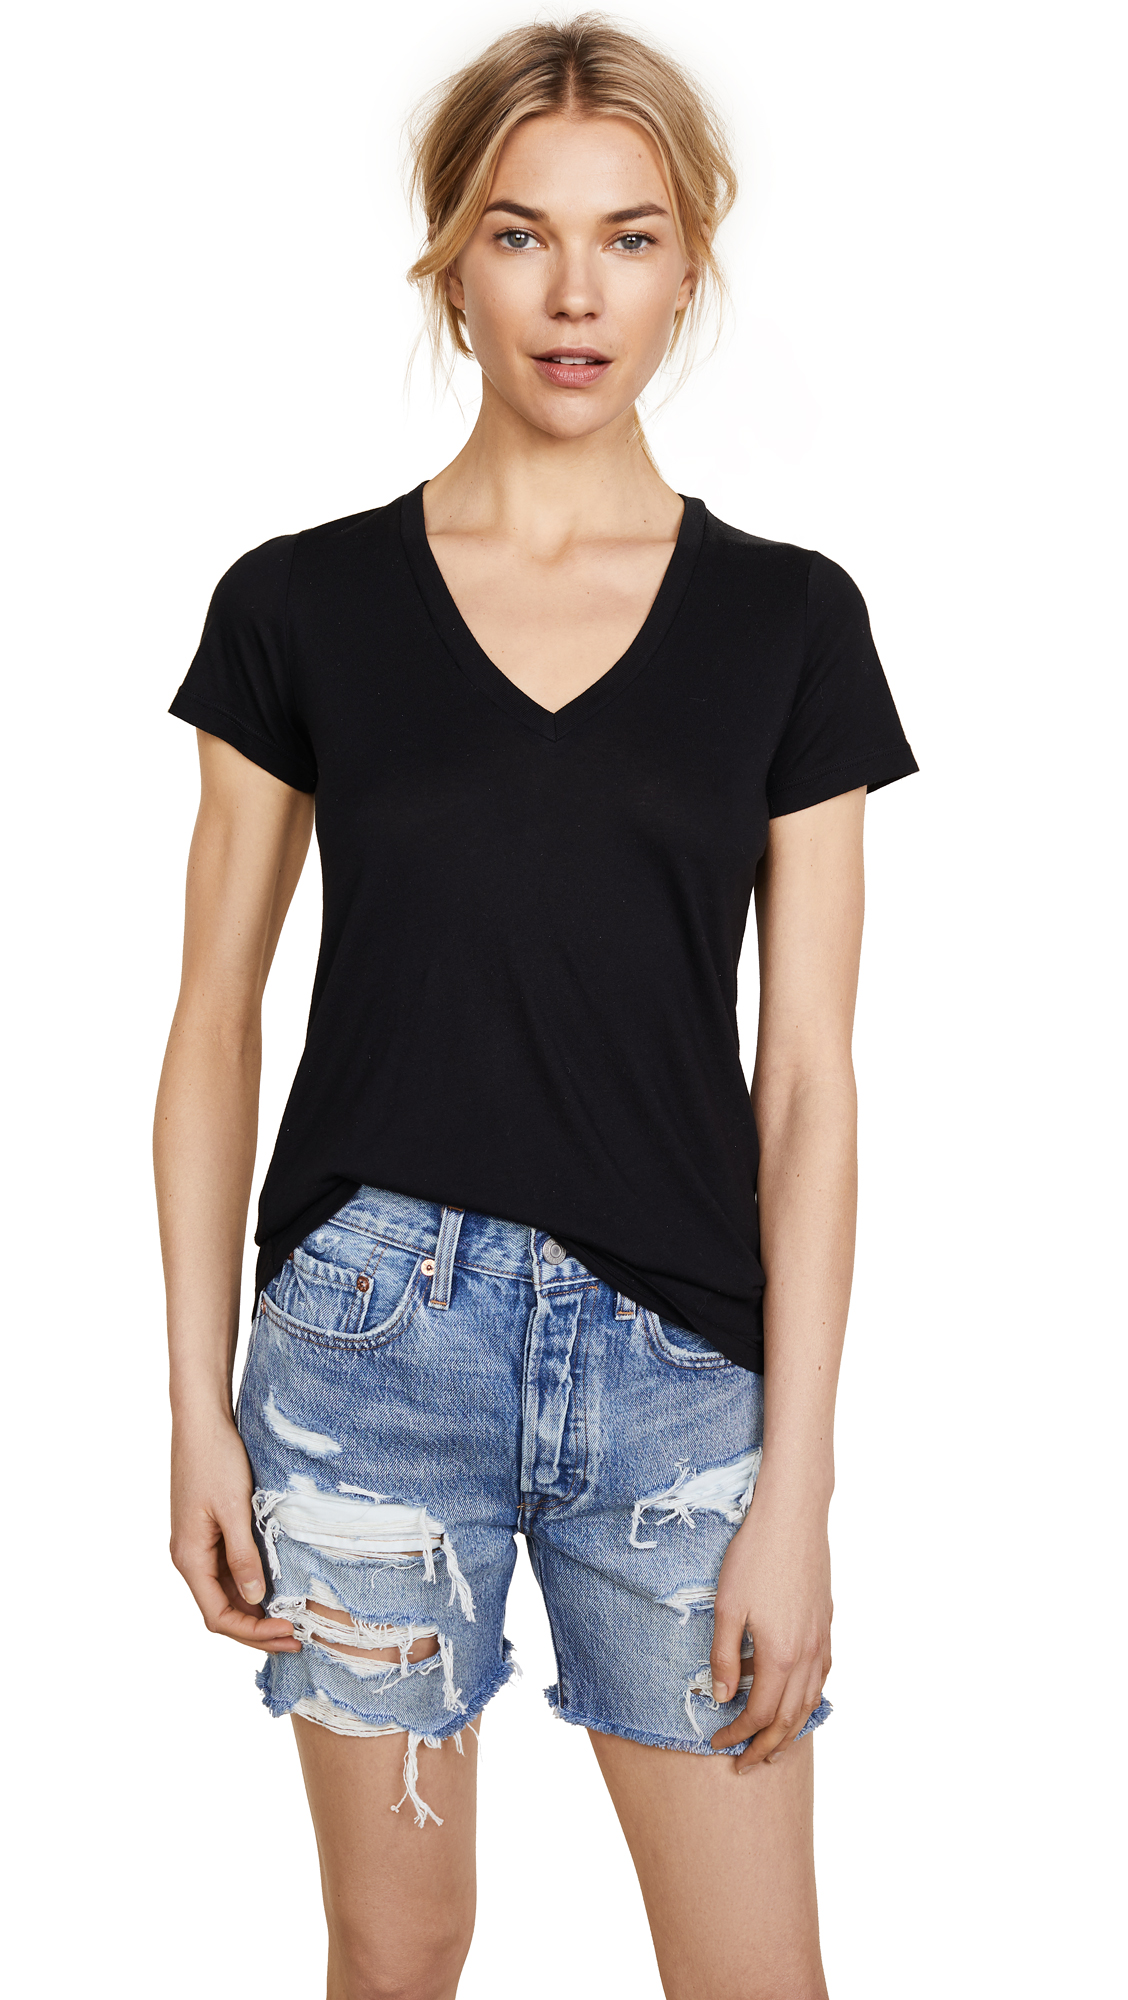 Splendid Very Light Jersey V Neck Tee - Black